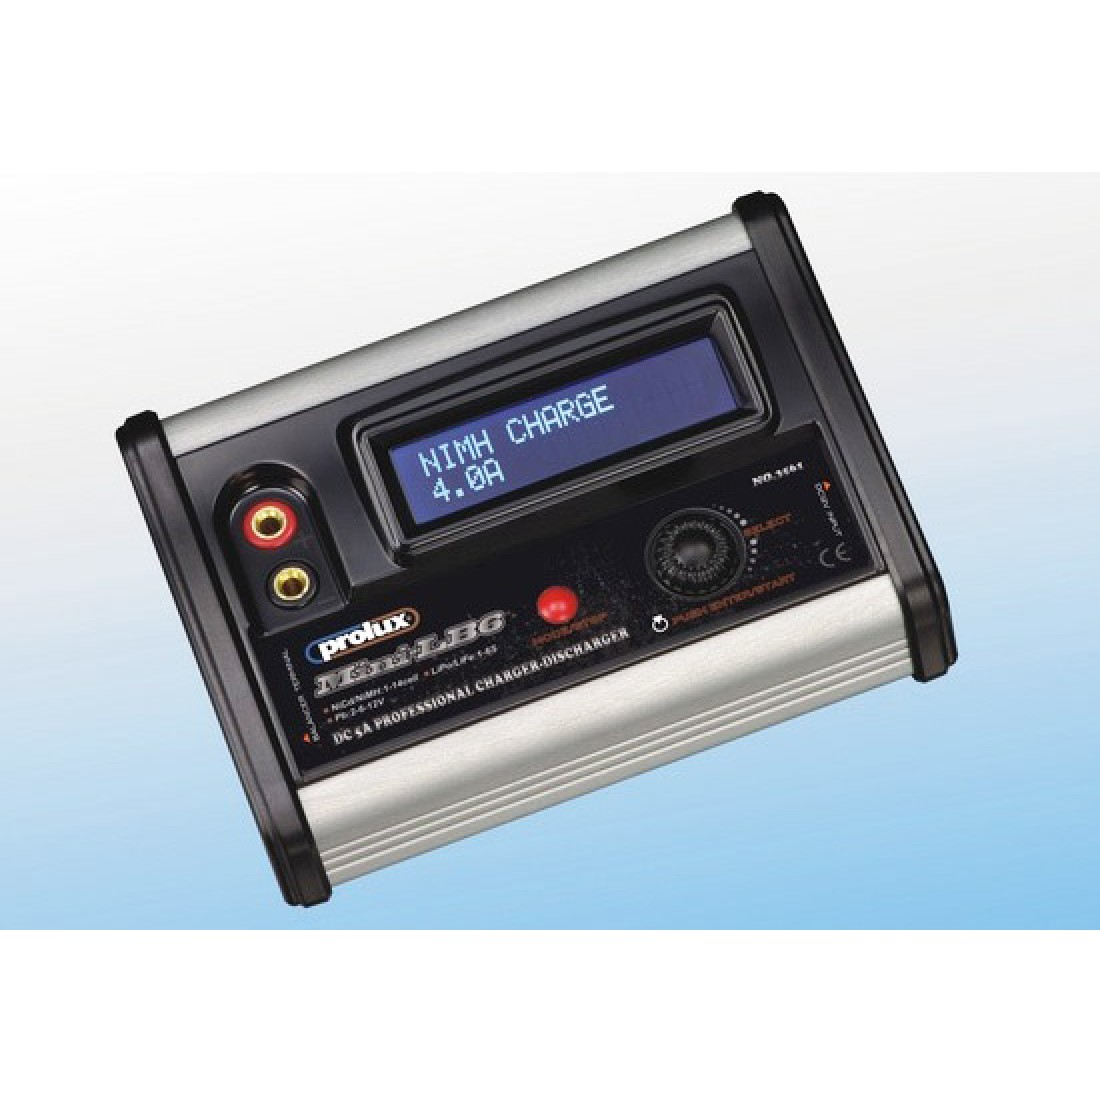 Dc Peak Charger Discharger Ni Mh1 14clipo Life1 6c Work With Prolux Lipo This Balancer Can Be Used To 2 3